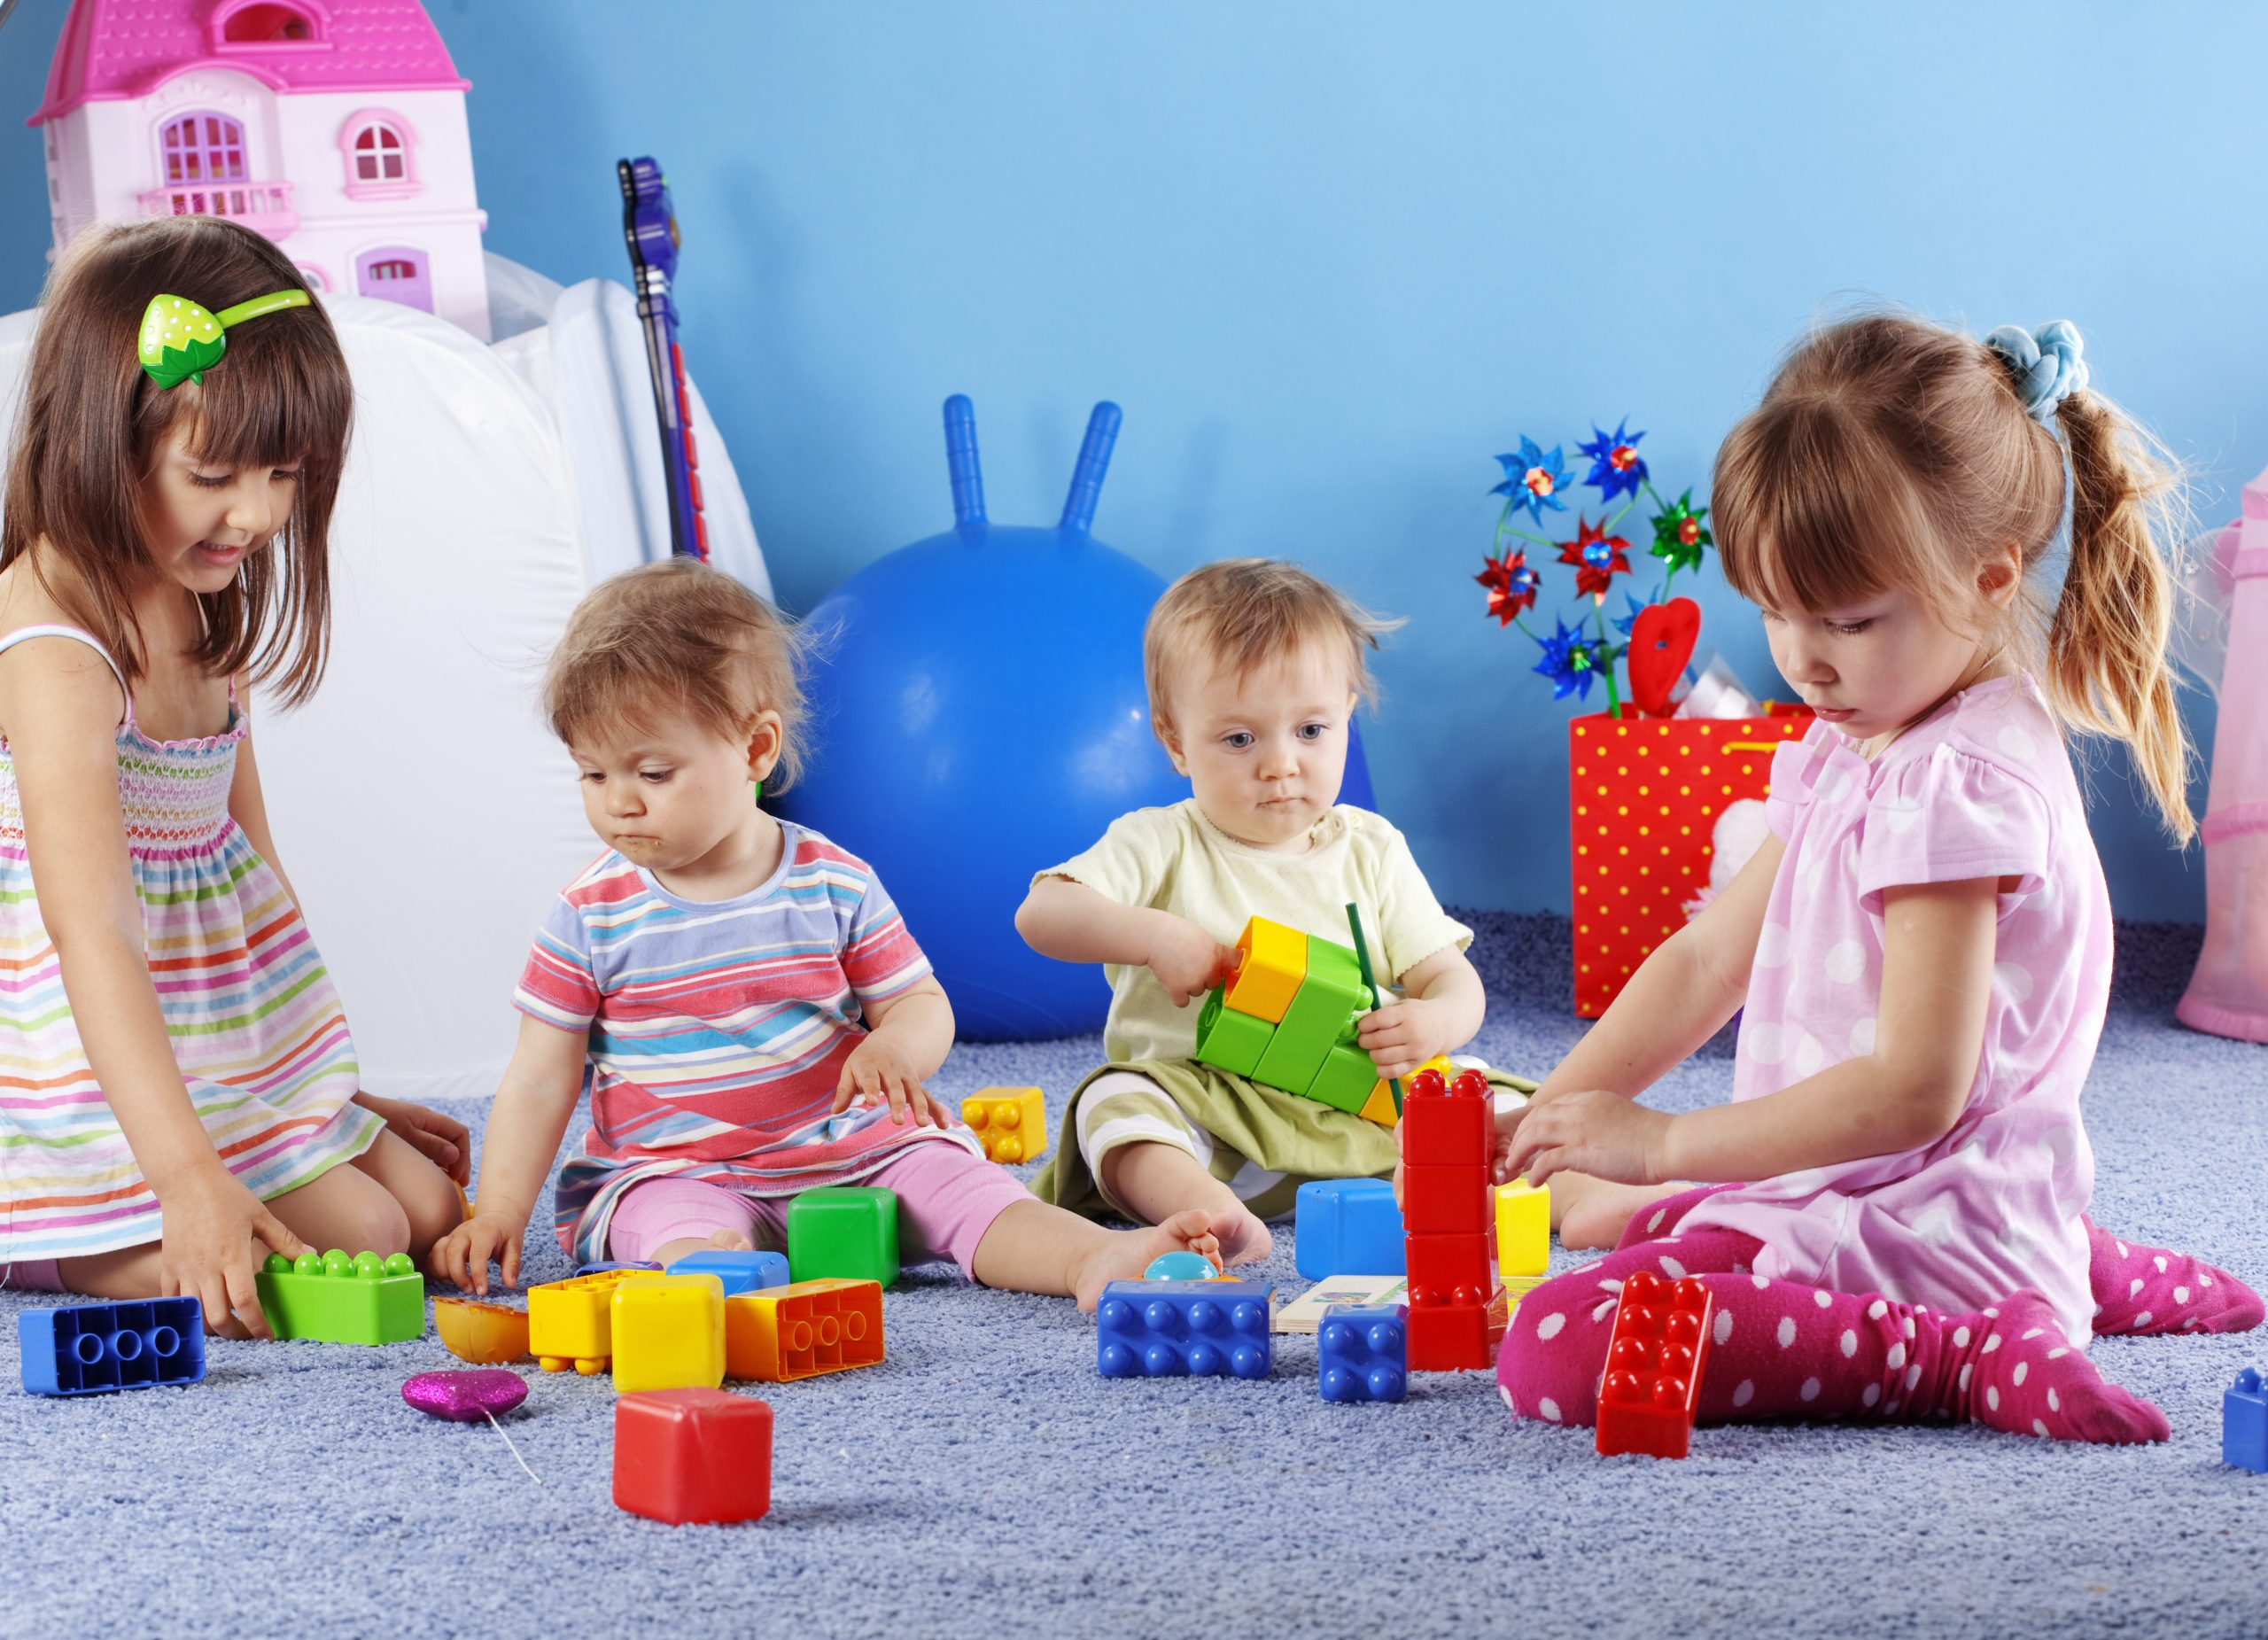 4 children playing in a daycare in Calgary